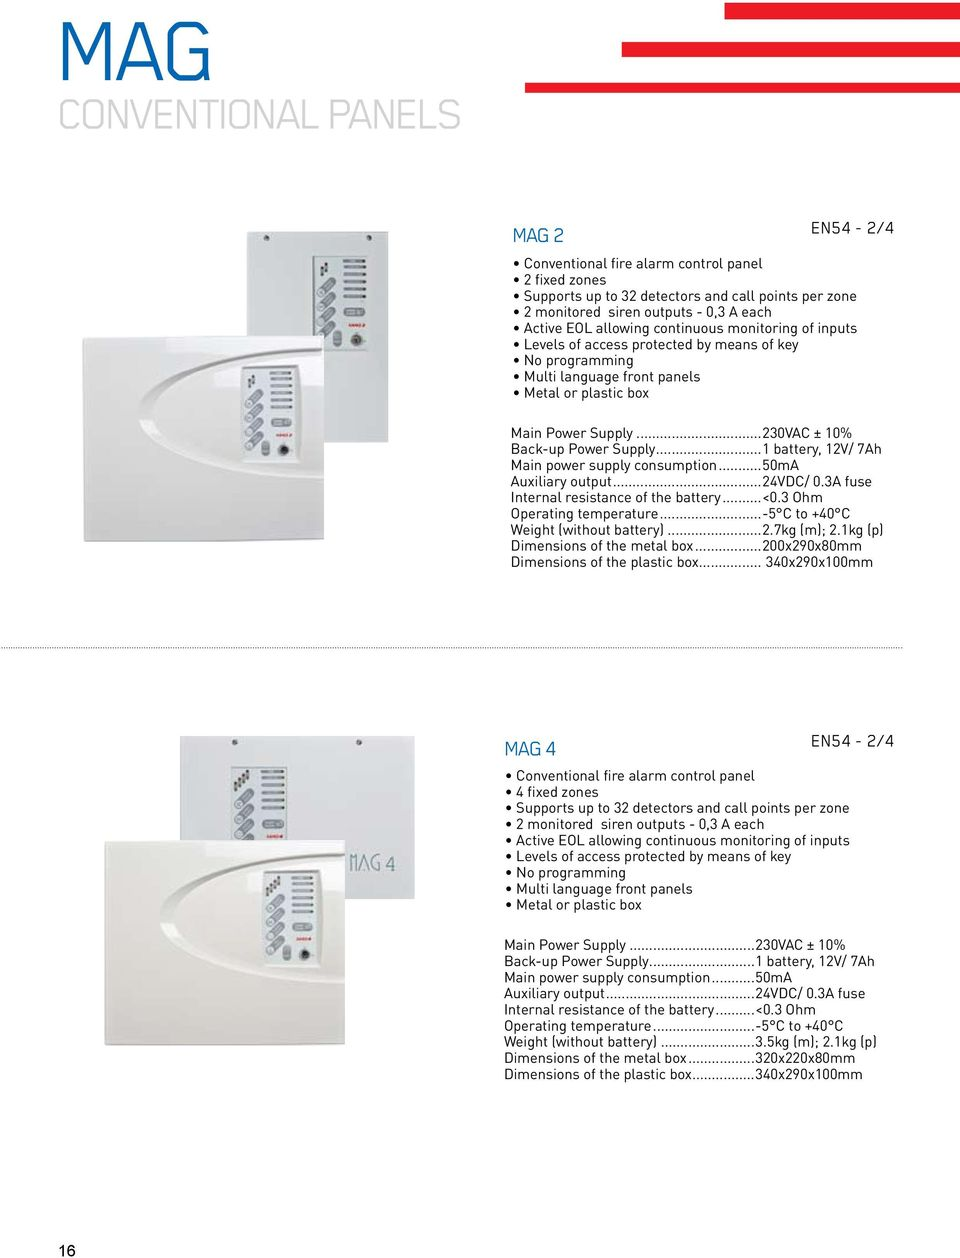 2015 fire alarm systems product catalogue pdf1 battery, 12v 7ah main power supply consumption 50ma 17 mag conventional panels mag 8 en54 2 4 conventional fire alarm control